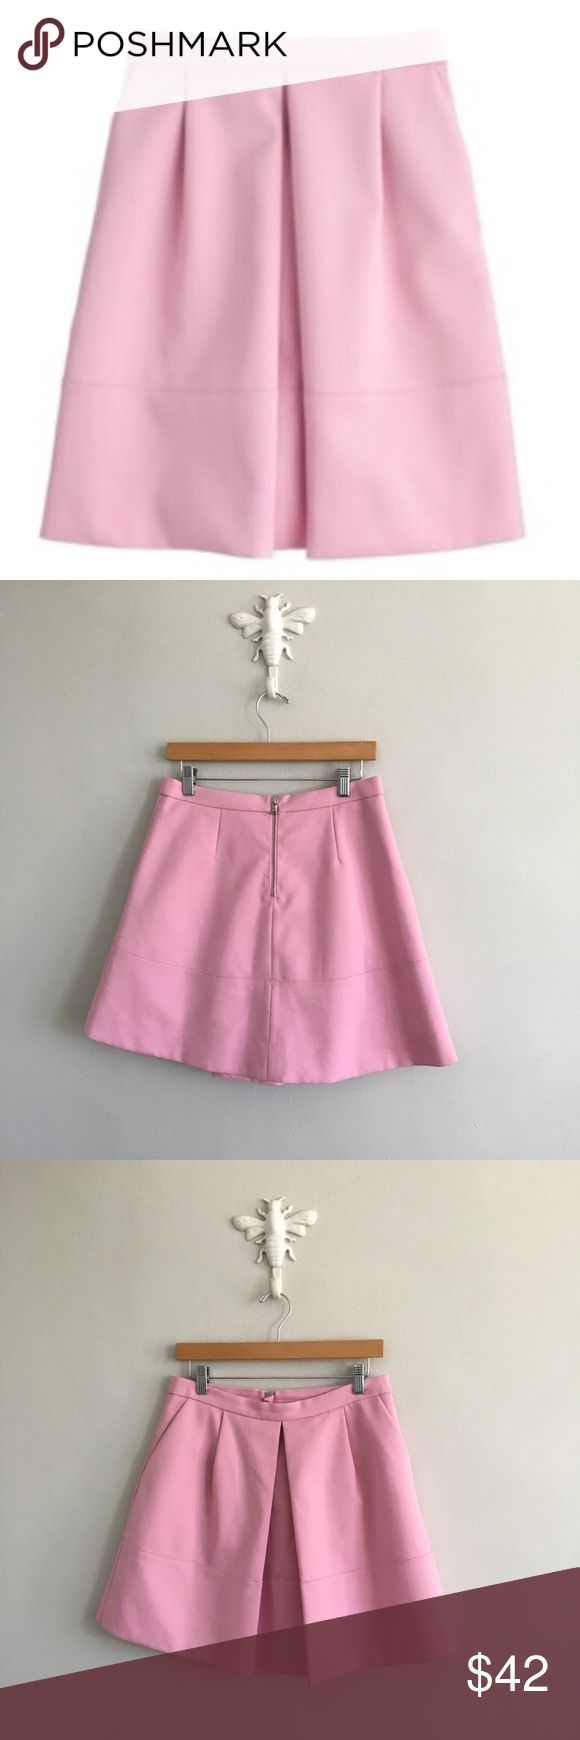 """J. Crew Lilac Pleat Front Mini Skirt with Pockets Gently pre-loved with no rips or stains. Please see all pictures for an accurate description of condition. Size 6. 91% polyester, 9% elastane. Lining: 100% polyester. Backing: 62% polyester, 26% viscose, 2% elastane. Waist: 29"""". Length: 17.5"""". J. Crew Skirts A-Line or Full"""